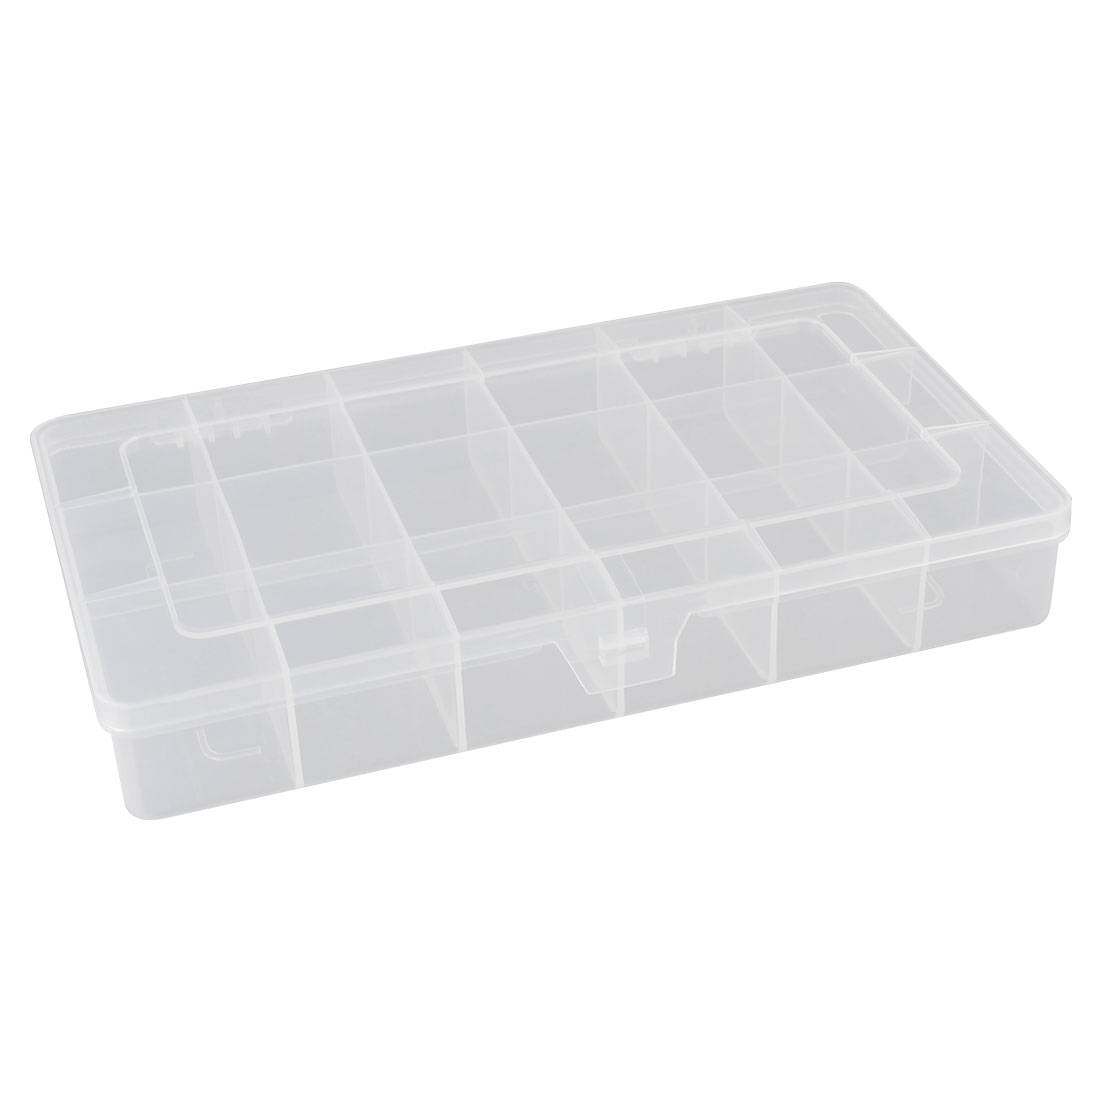 18 Components Earrings Jewelry Organizer Storage Box Holder Clear